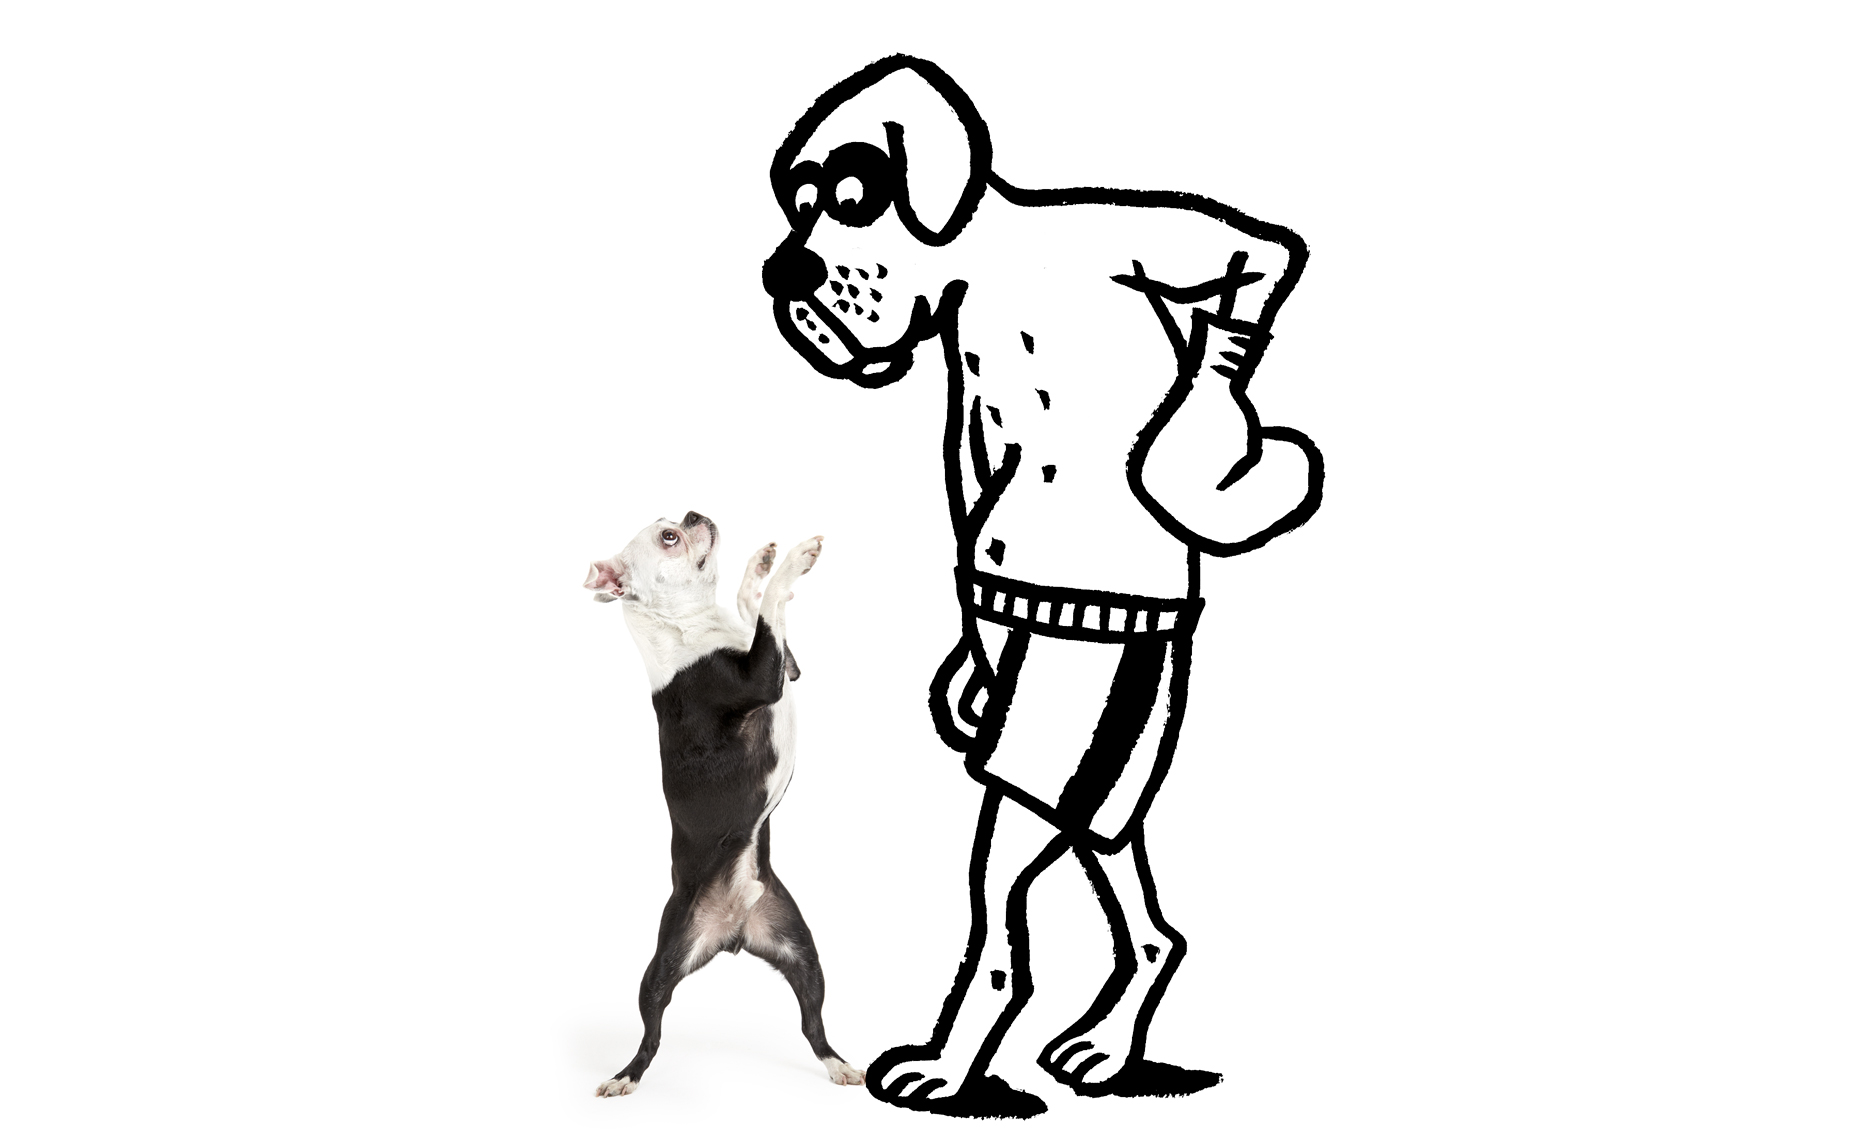 Boston Terrier boxing illustration